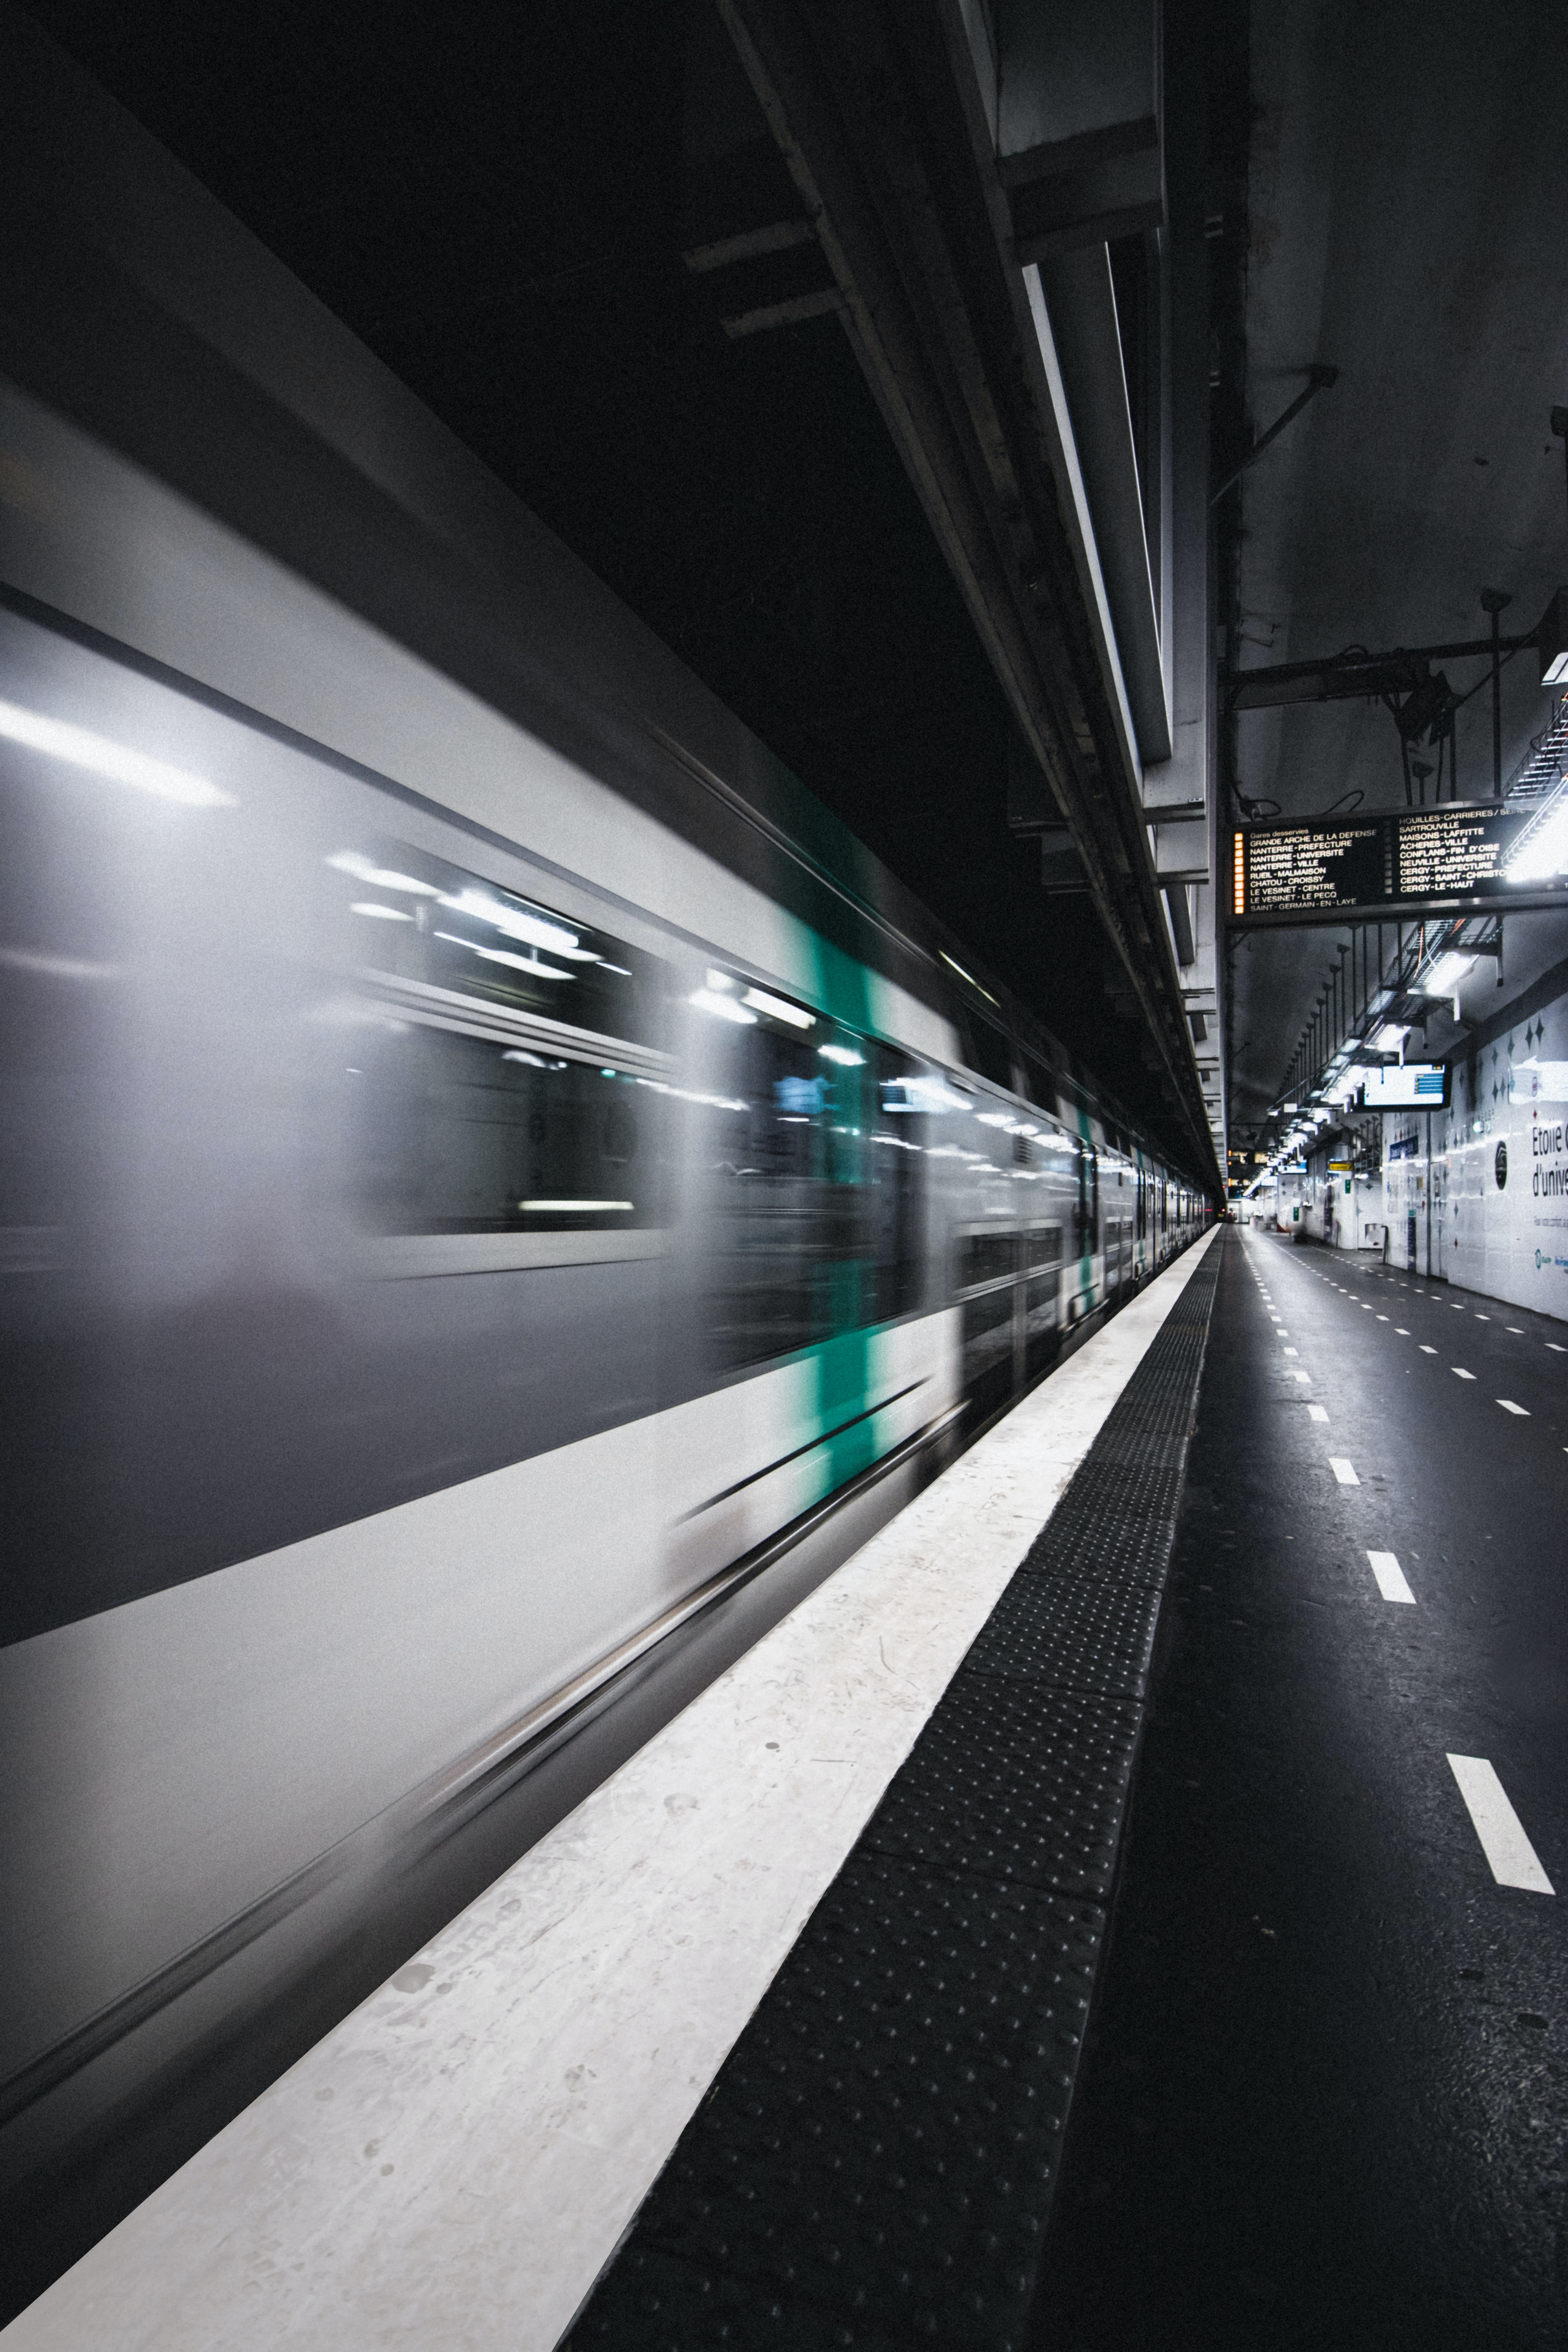 140206 Screensavers and Wallpapers Metro for phone. Download Miscellanea, Miscellaneous, Traffic, Movement, Blur, Smooth, Train, Metro, Subway pictures for free